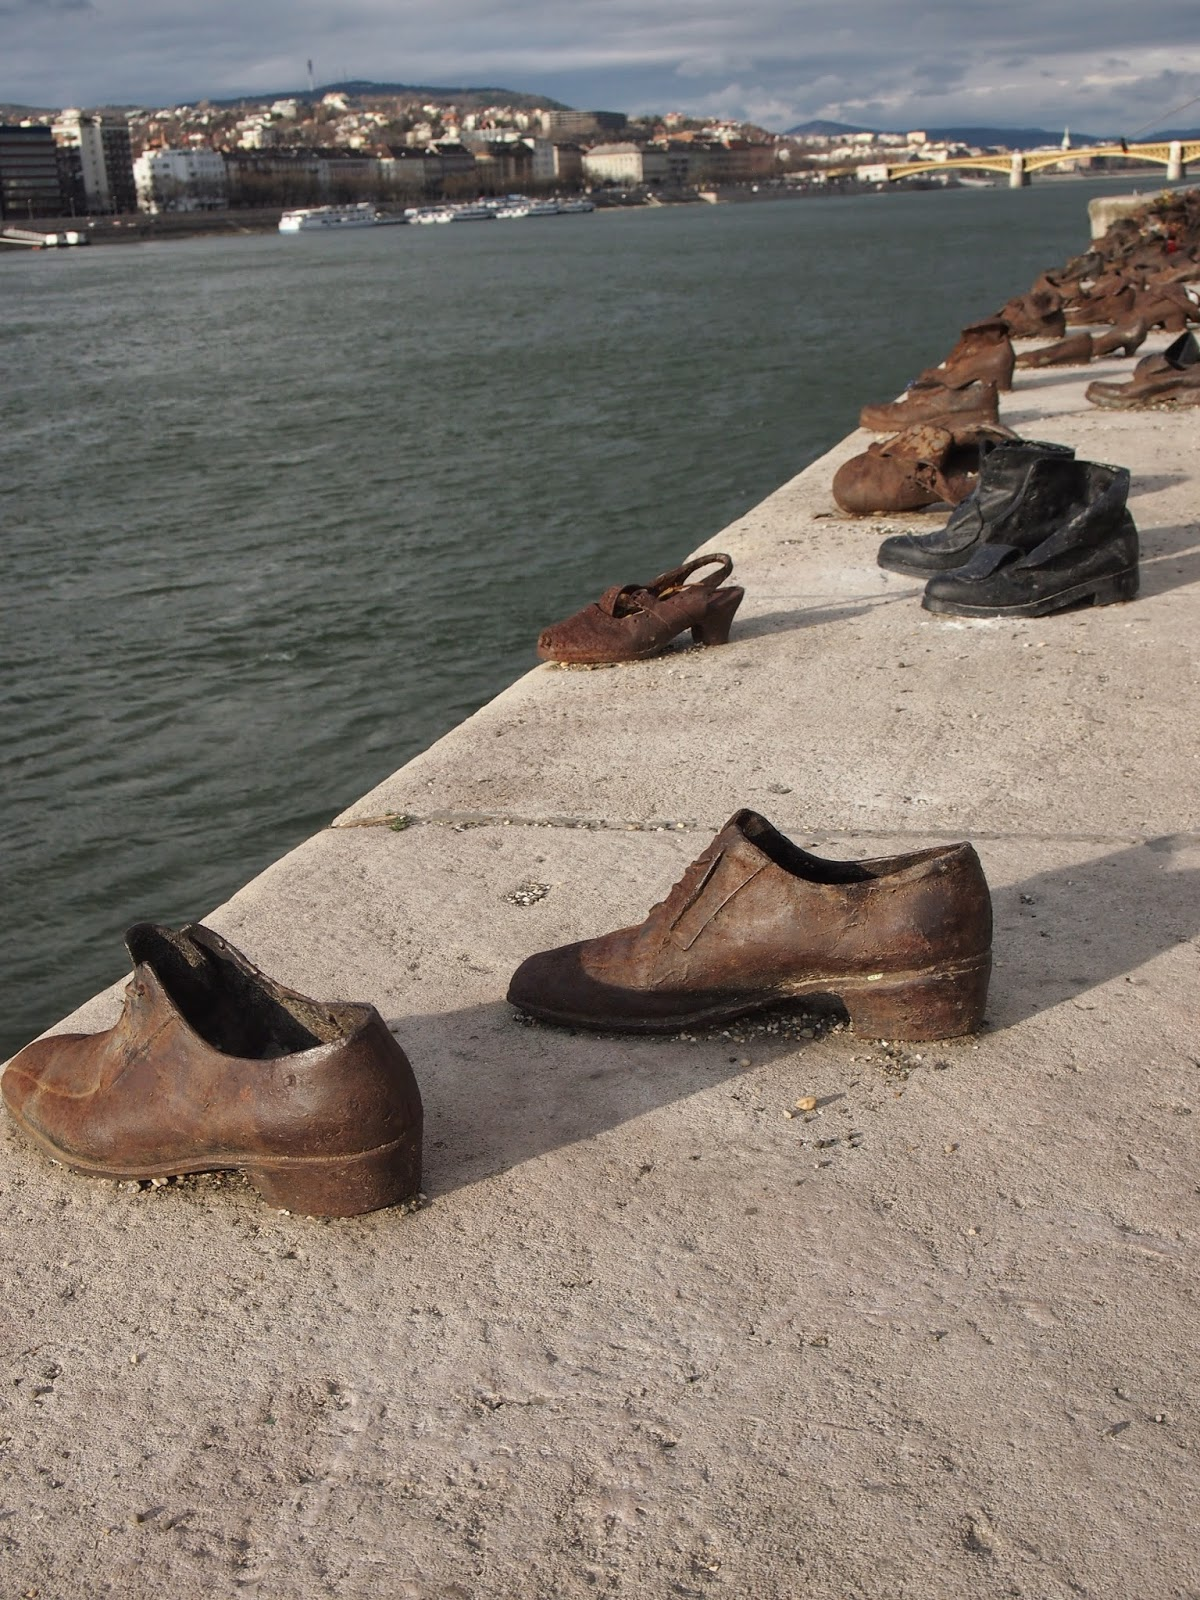 The shoes on the Danube river memorial in hungary